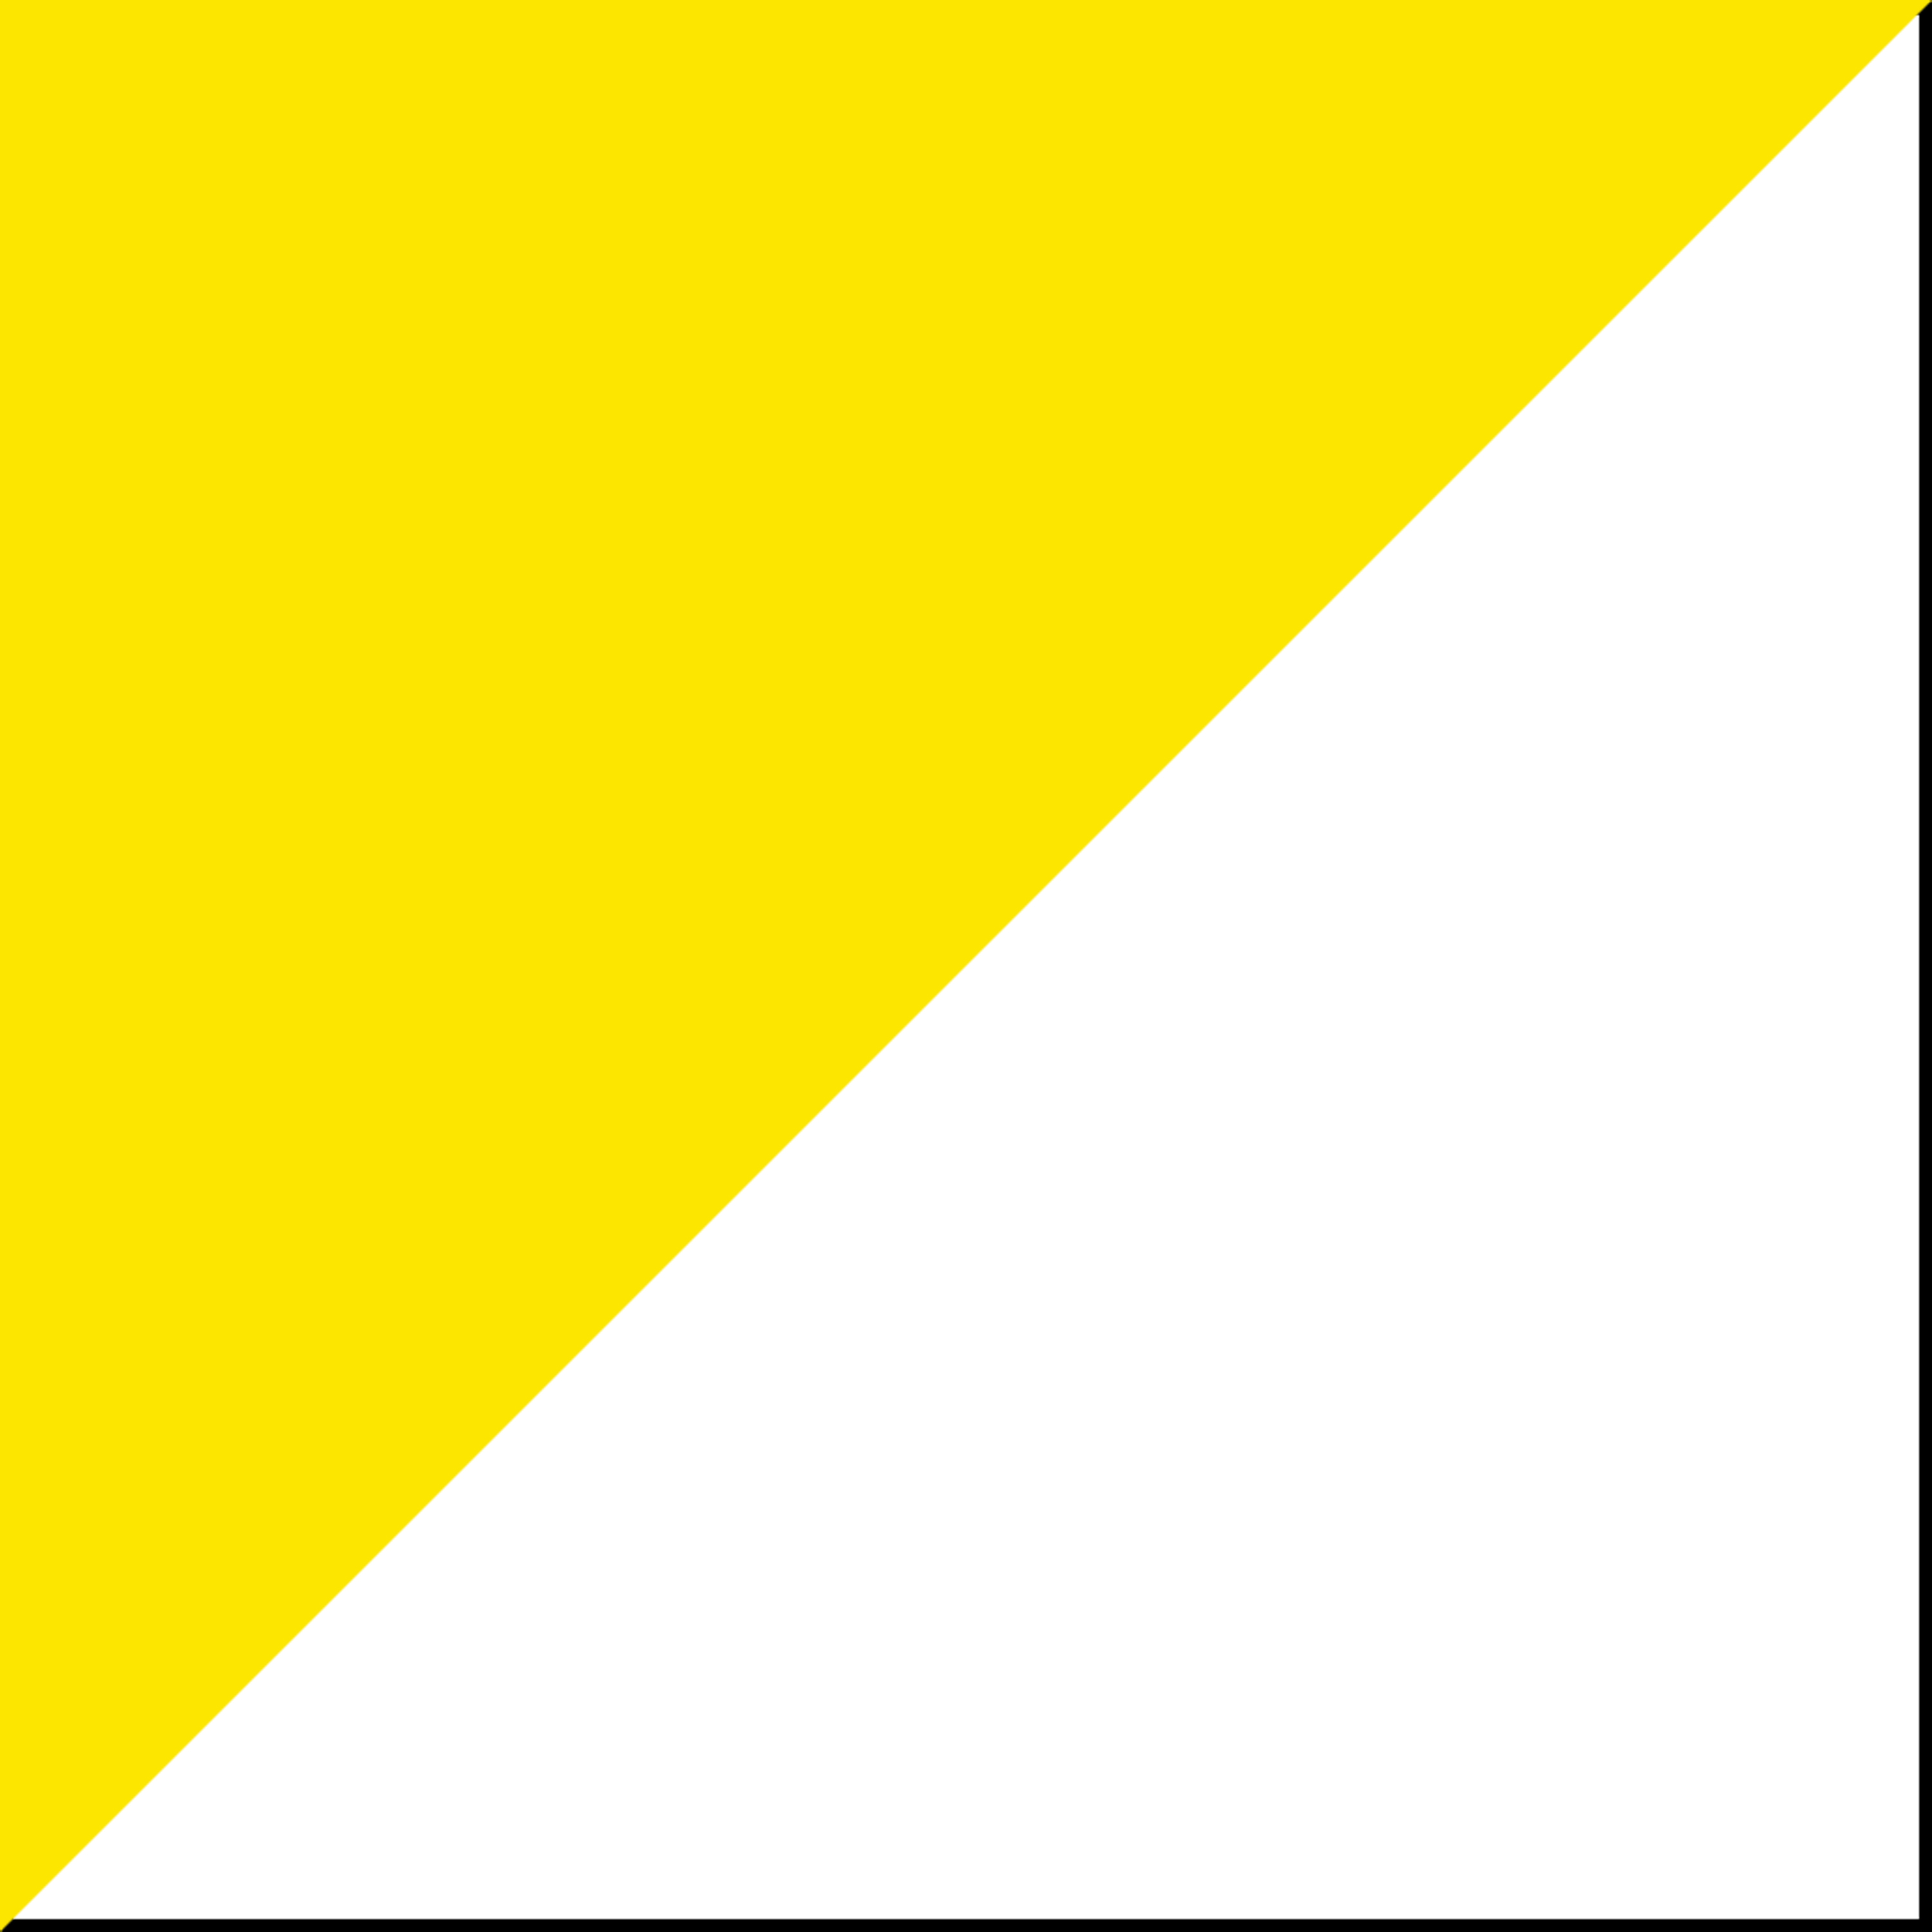 Colors: YW Yellow & White